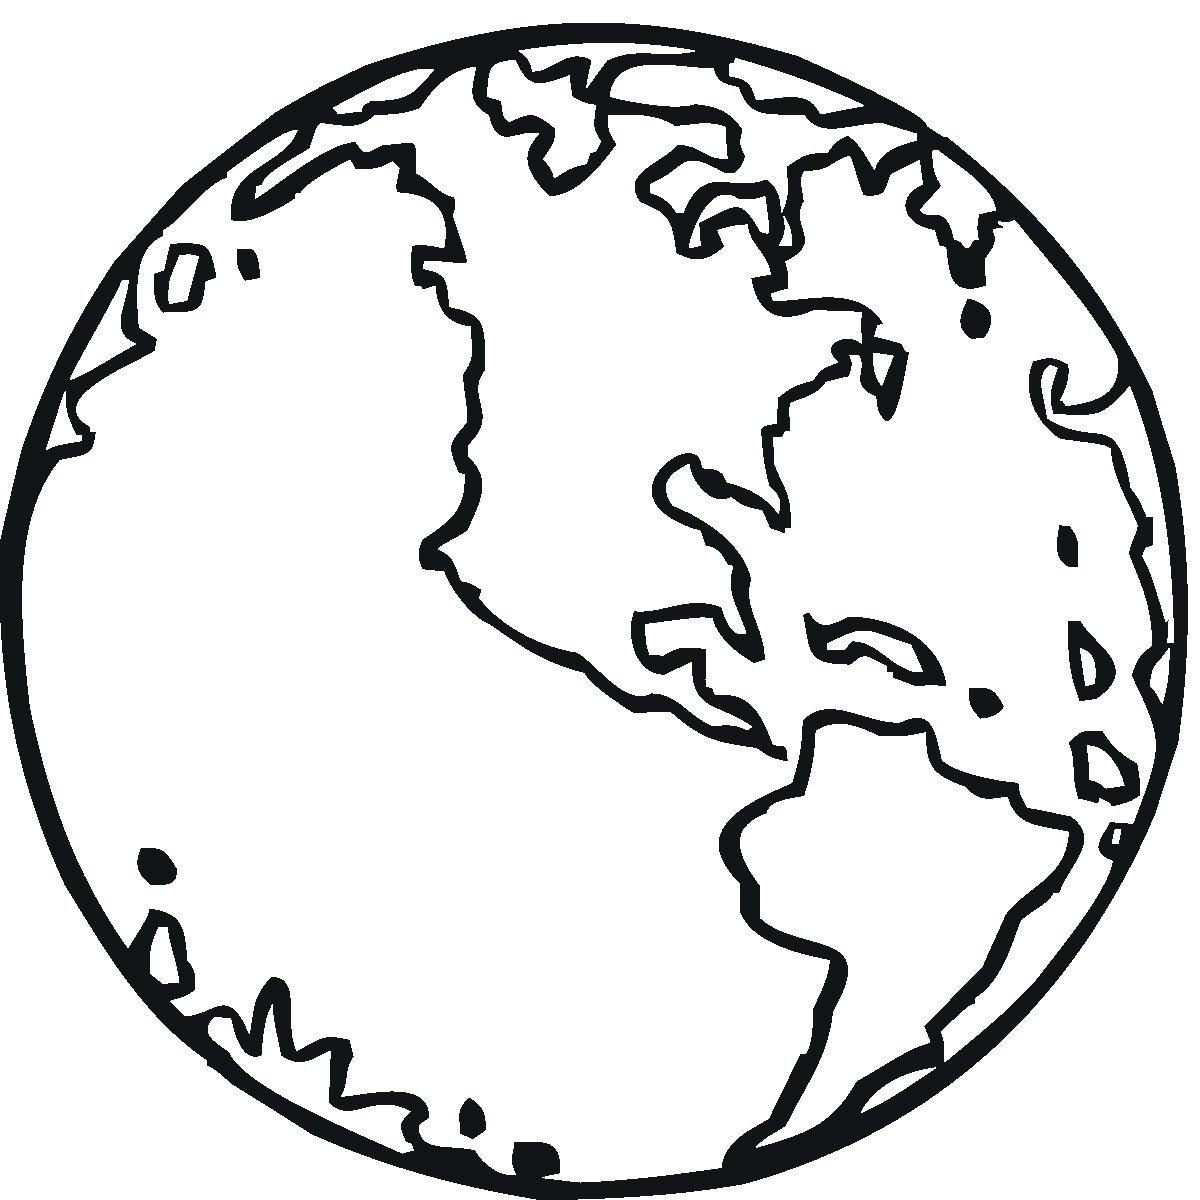 Free Printable Earth Coloring Pages For Kids | Stuff | Earth - Earth Coloring Pages Free Printable